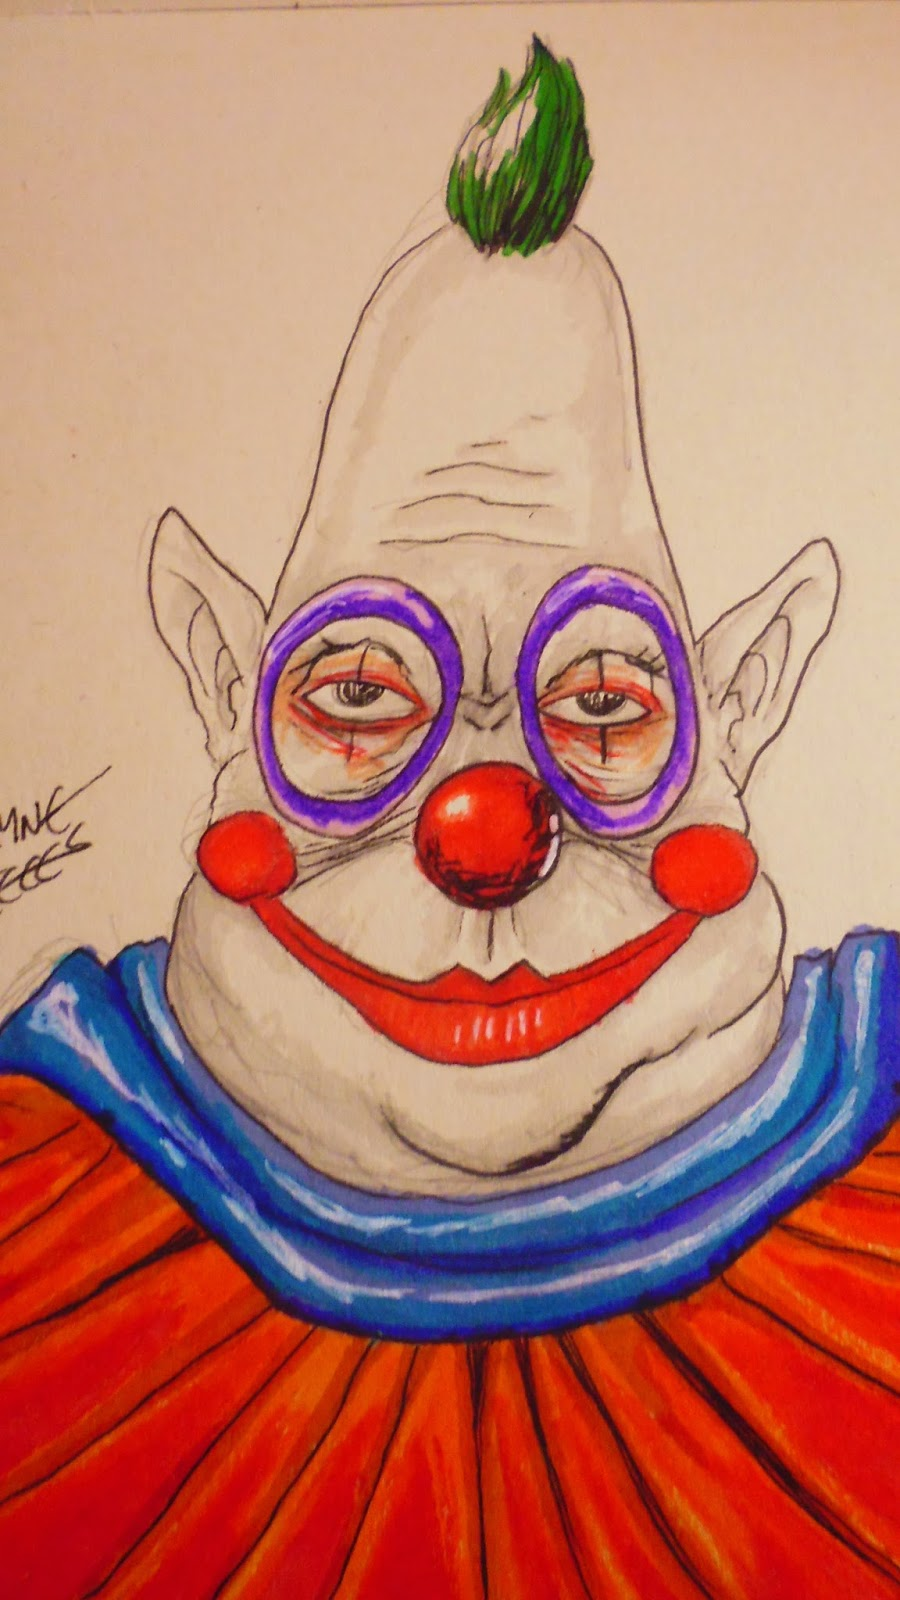 killerklowndrawing